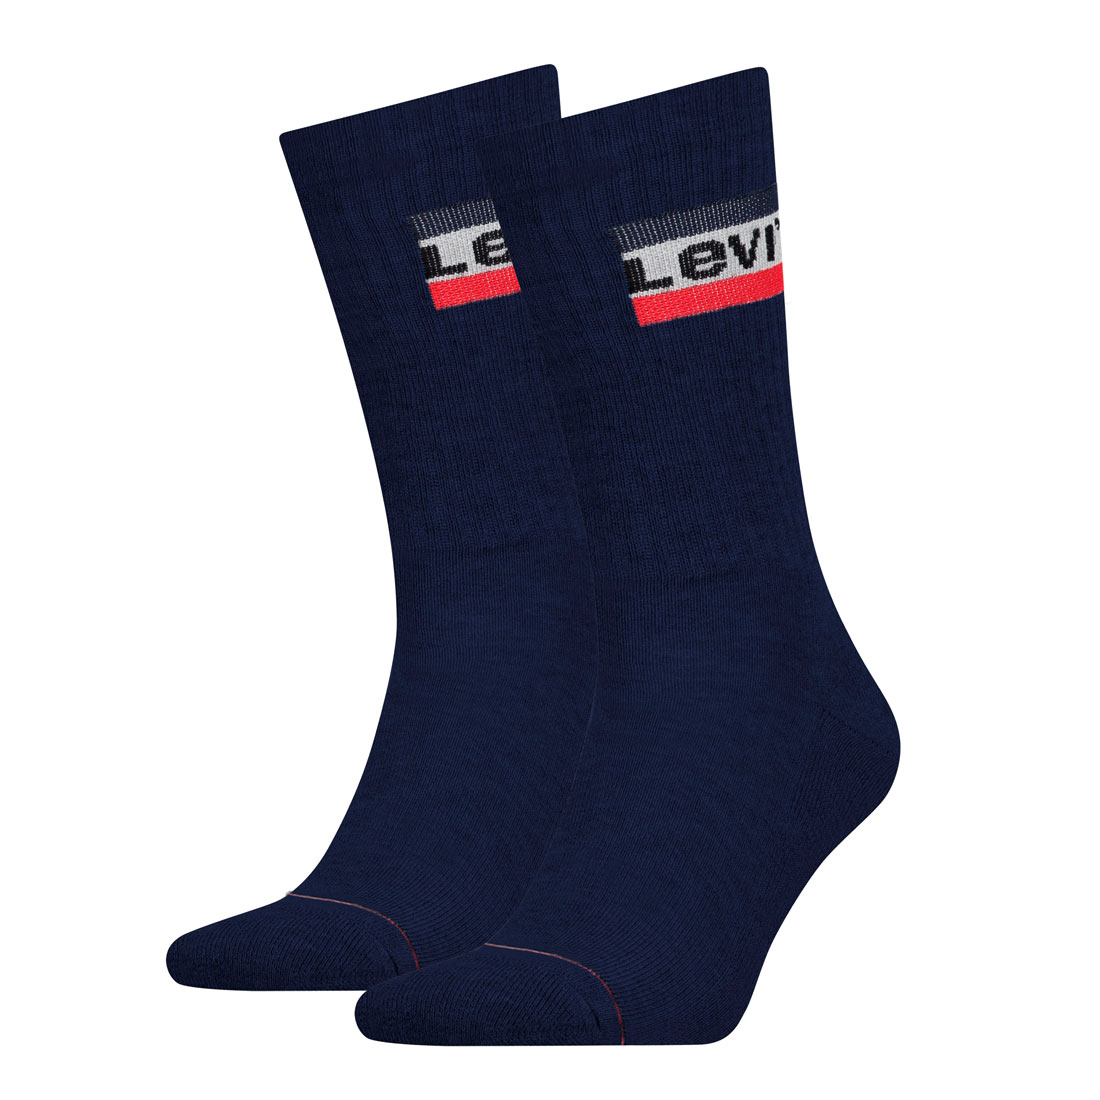 2 Paar Levis 144NDL Regular Cut SPR Unisex Socken Strümpfe 902012001 39-42, 198 - Dress Blues von Levi's